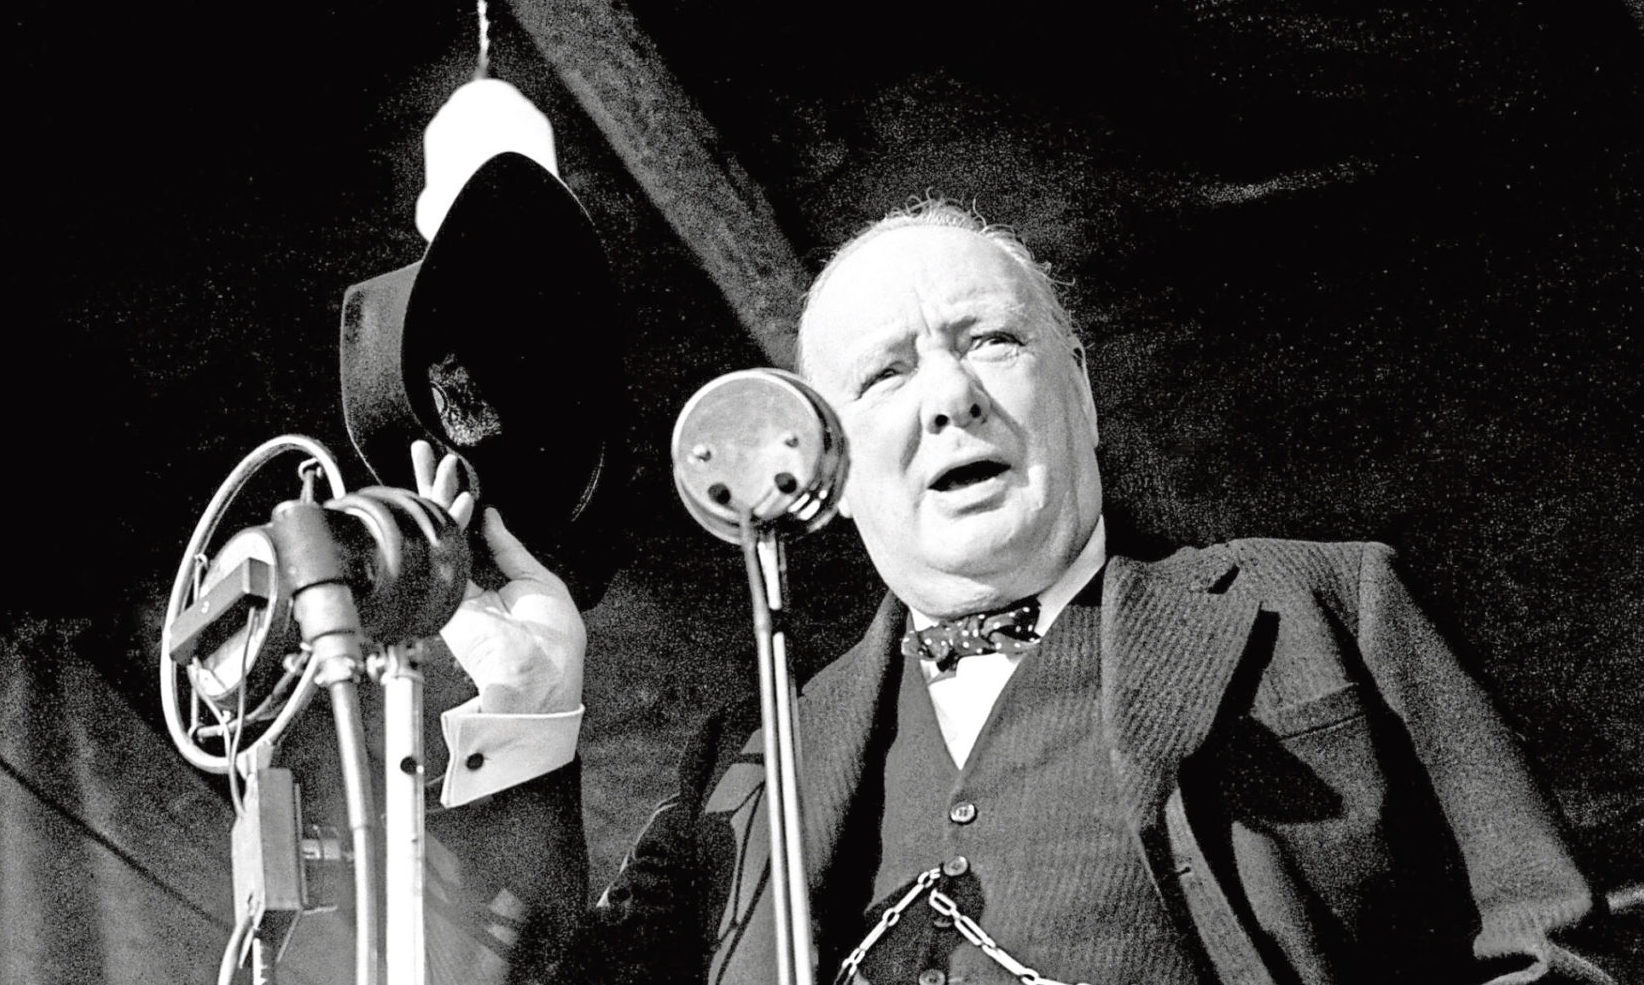 Winston Churchill's government knew about Operation Cauldron and Operation Hesperus.